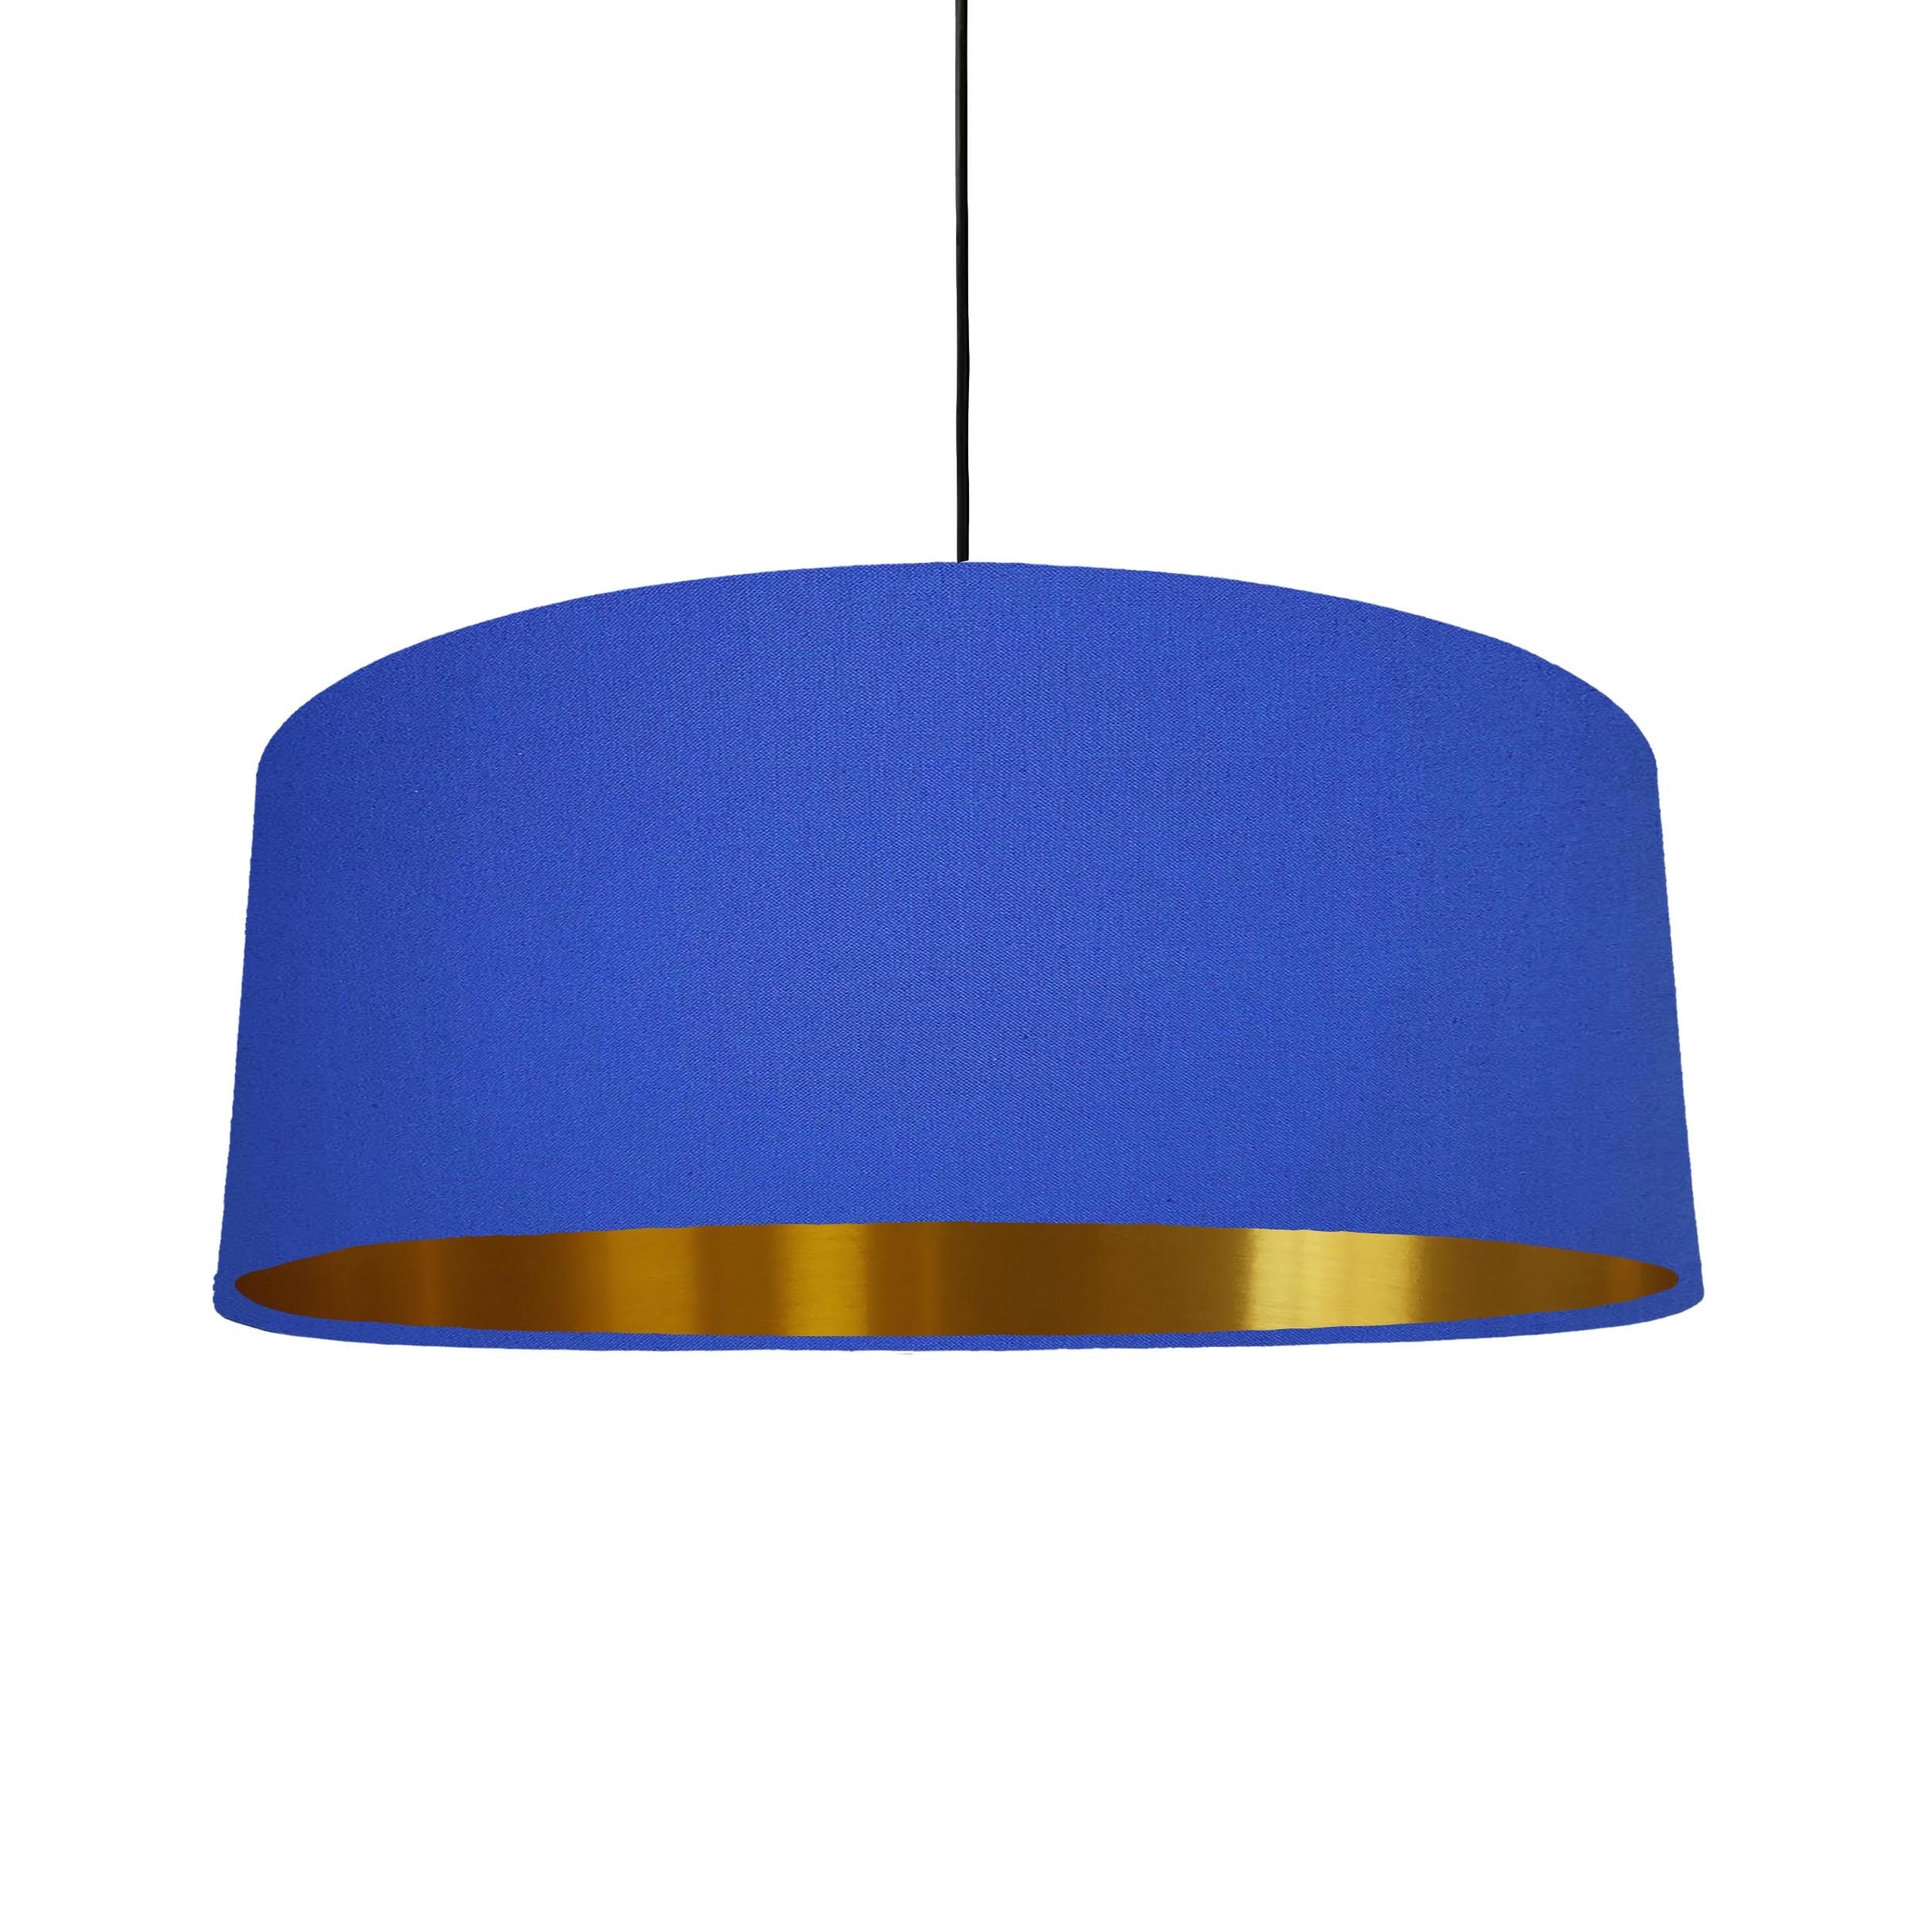 Extra Large Lampshade in Royal Blue Cotton and a Brushed Gold Lining